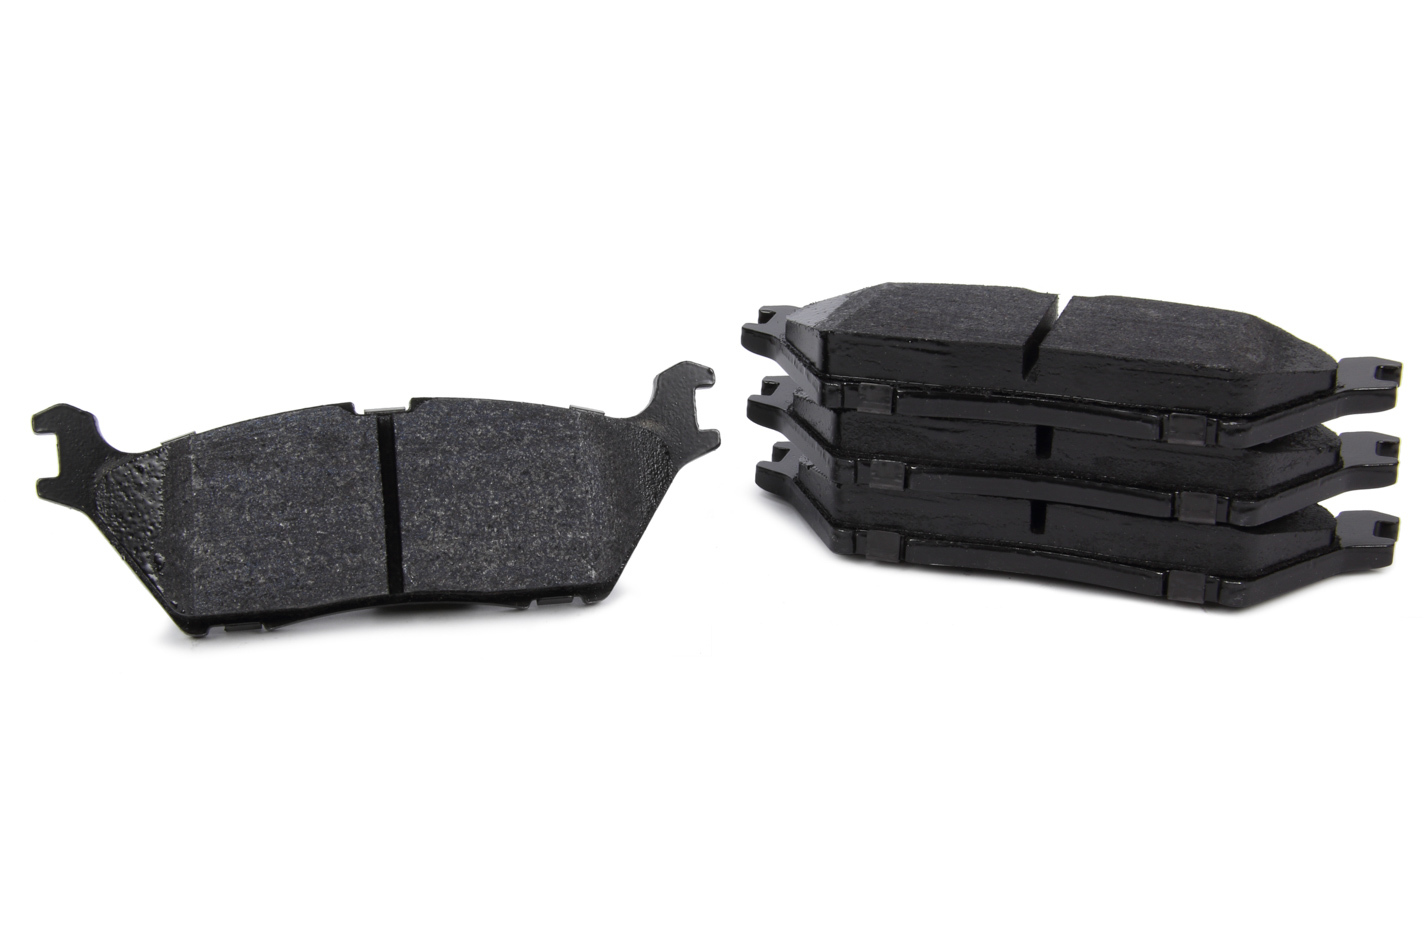 Hawk Brake HB792Z.676 Brake Pads, Performance Ceramic Compound, Rear, Ford F-150, Set of 4